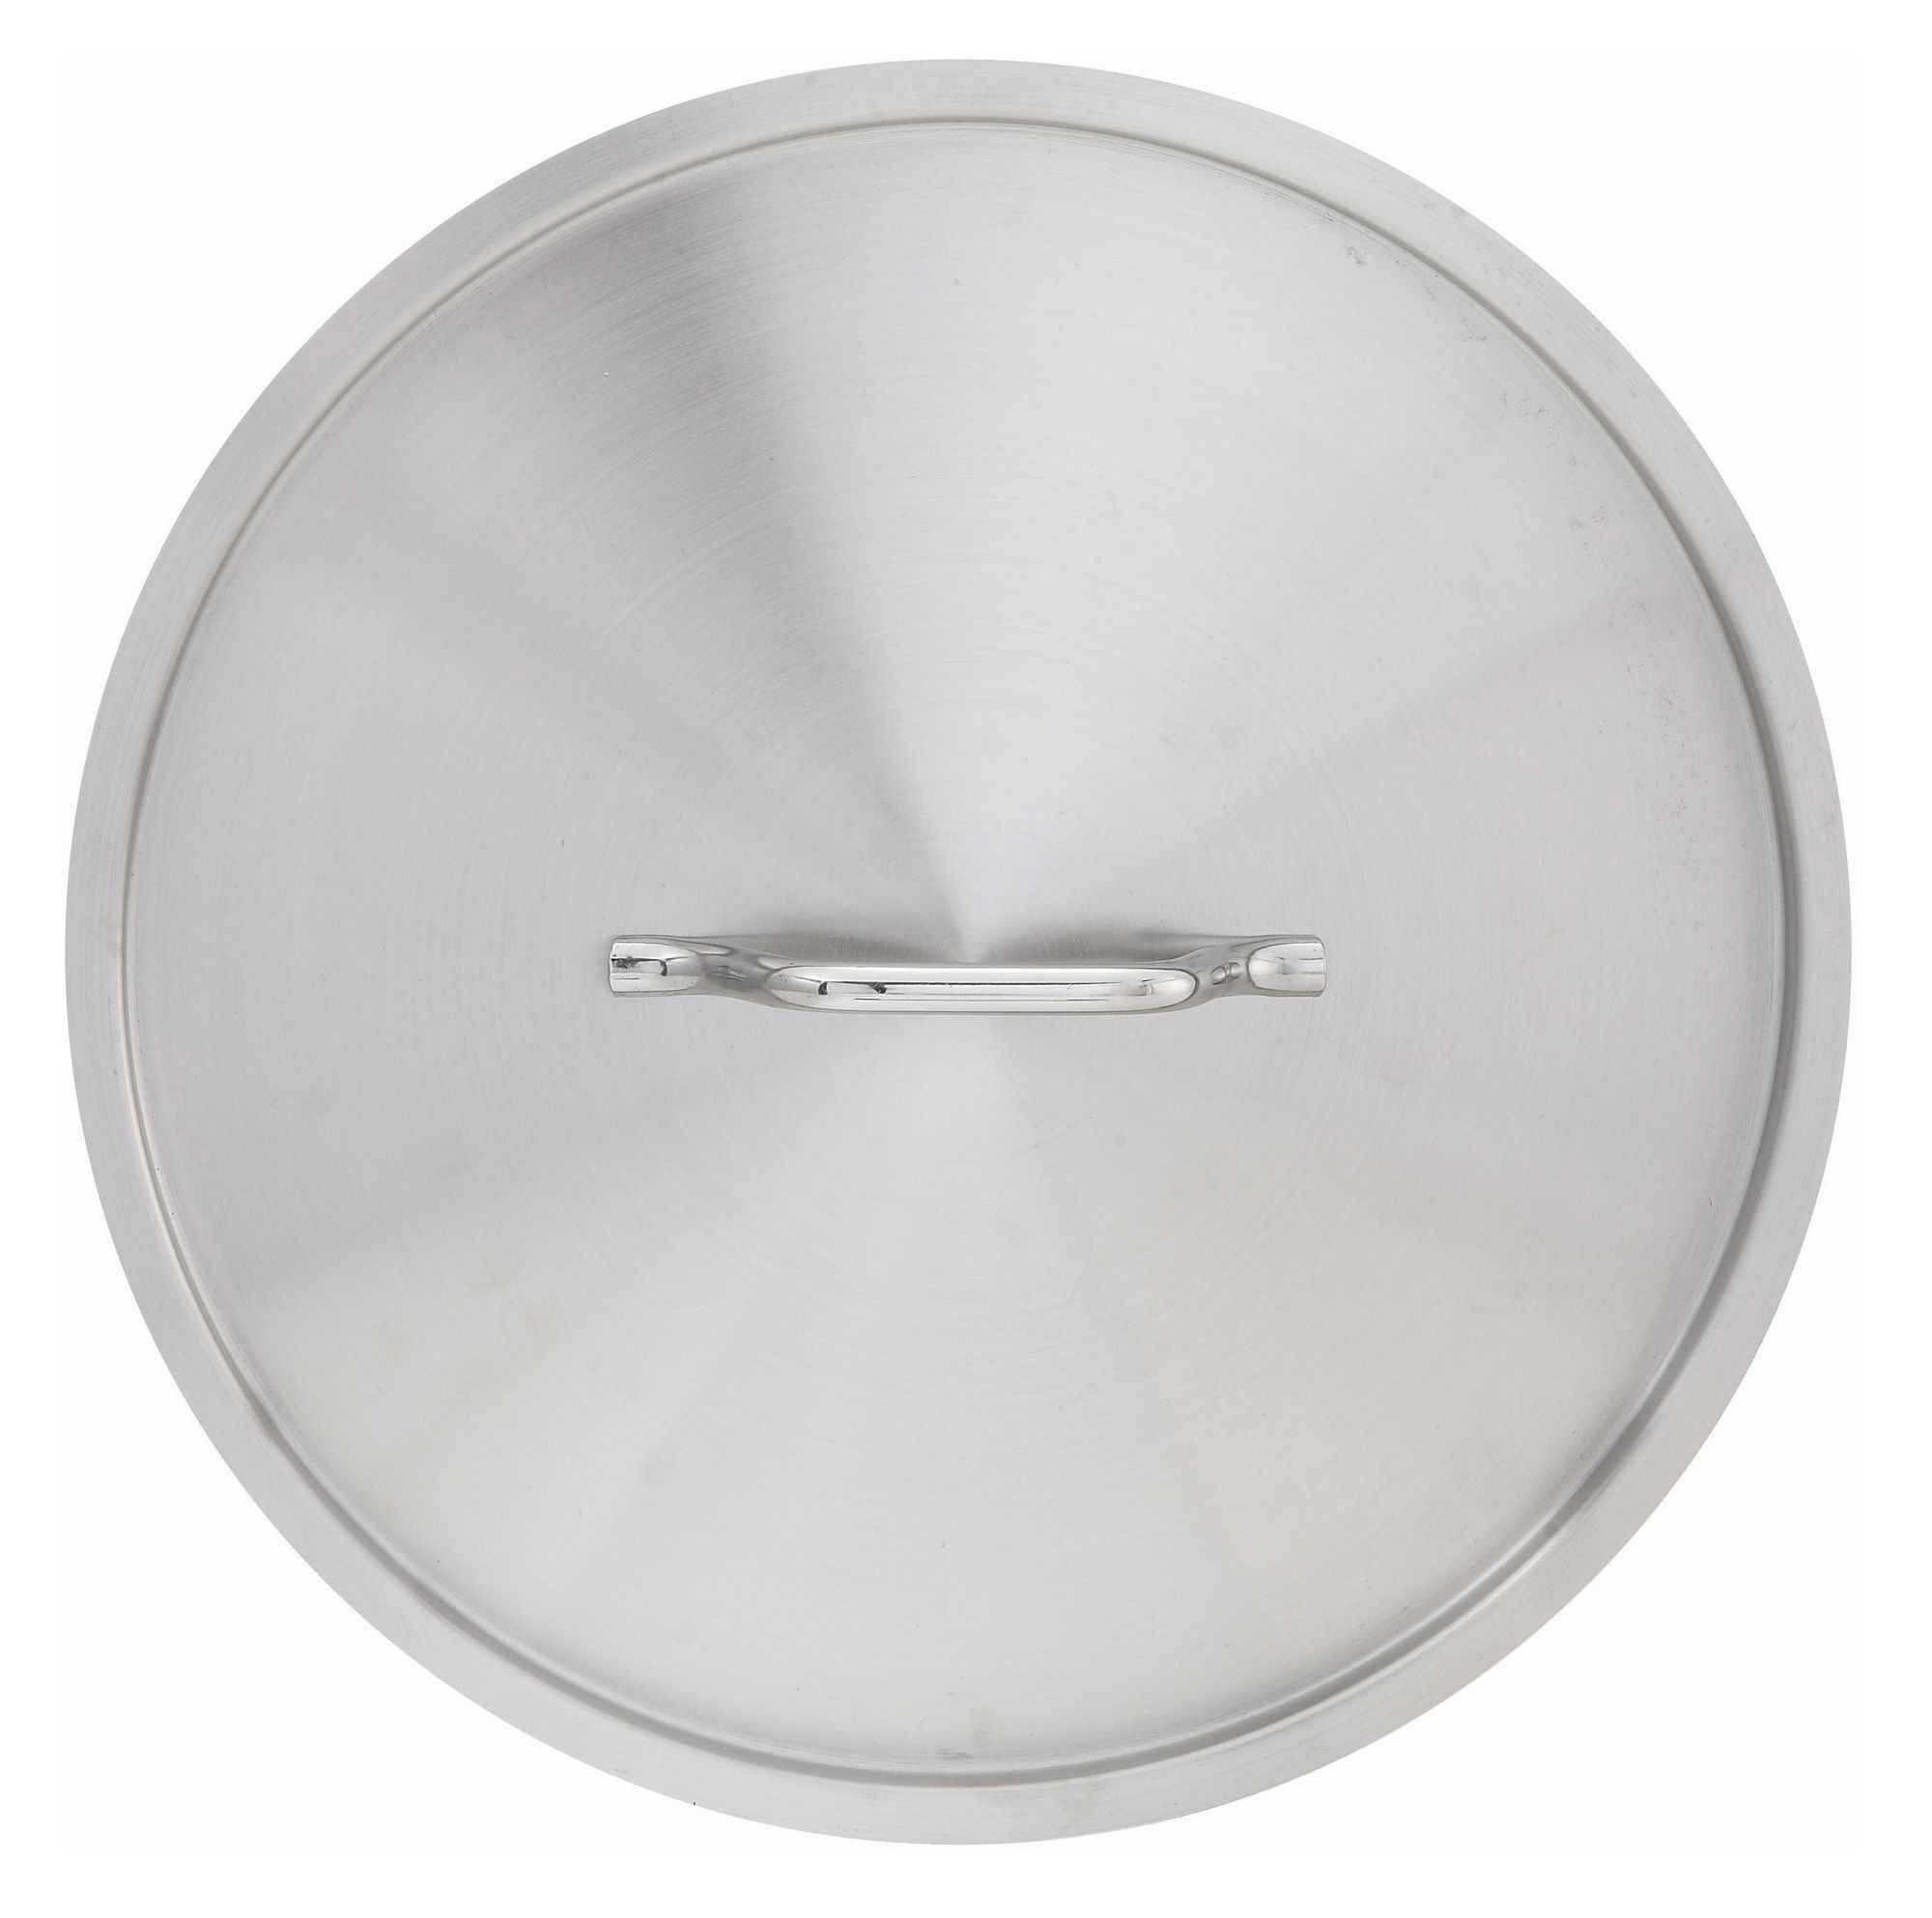 Winco SSTC-8F Stainless Steel Fry Pan Cover for SSFP-8 SSFP-8NS